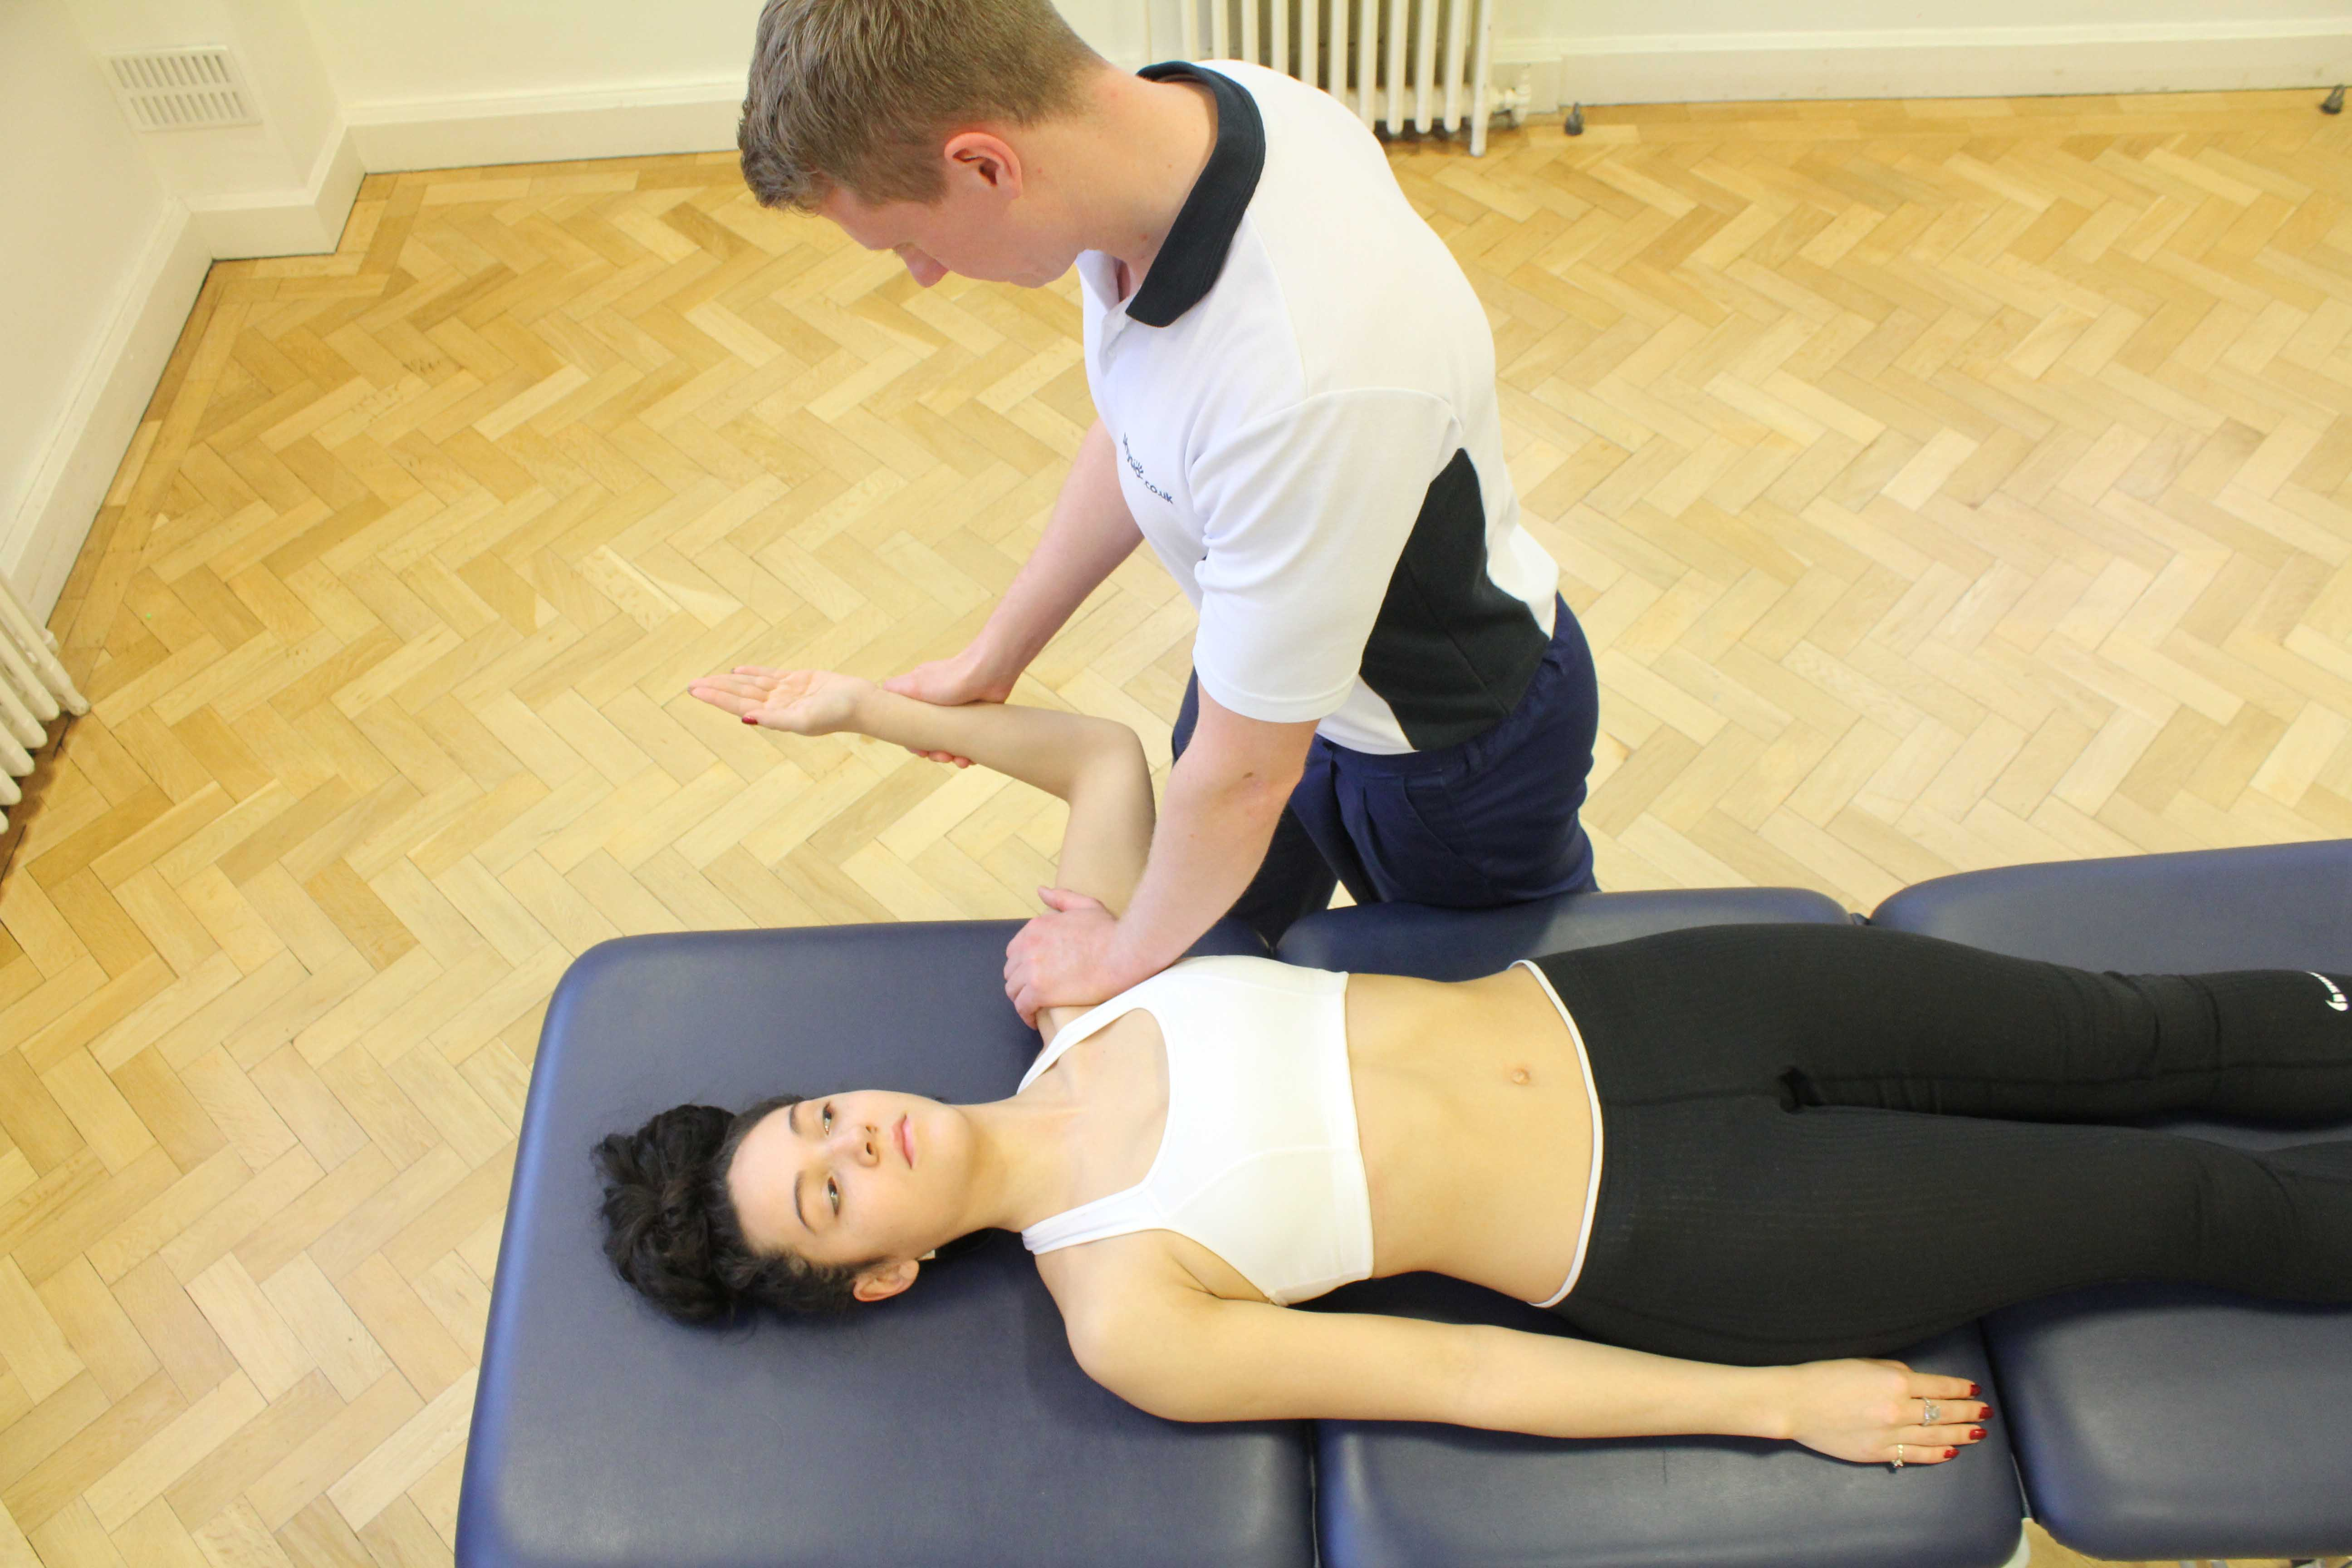 Mobilisation of the shoulder joint to relieve pain and stiffness